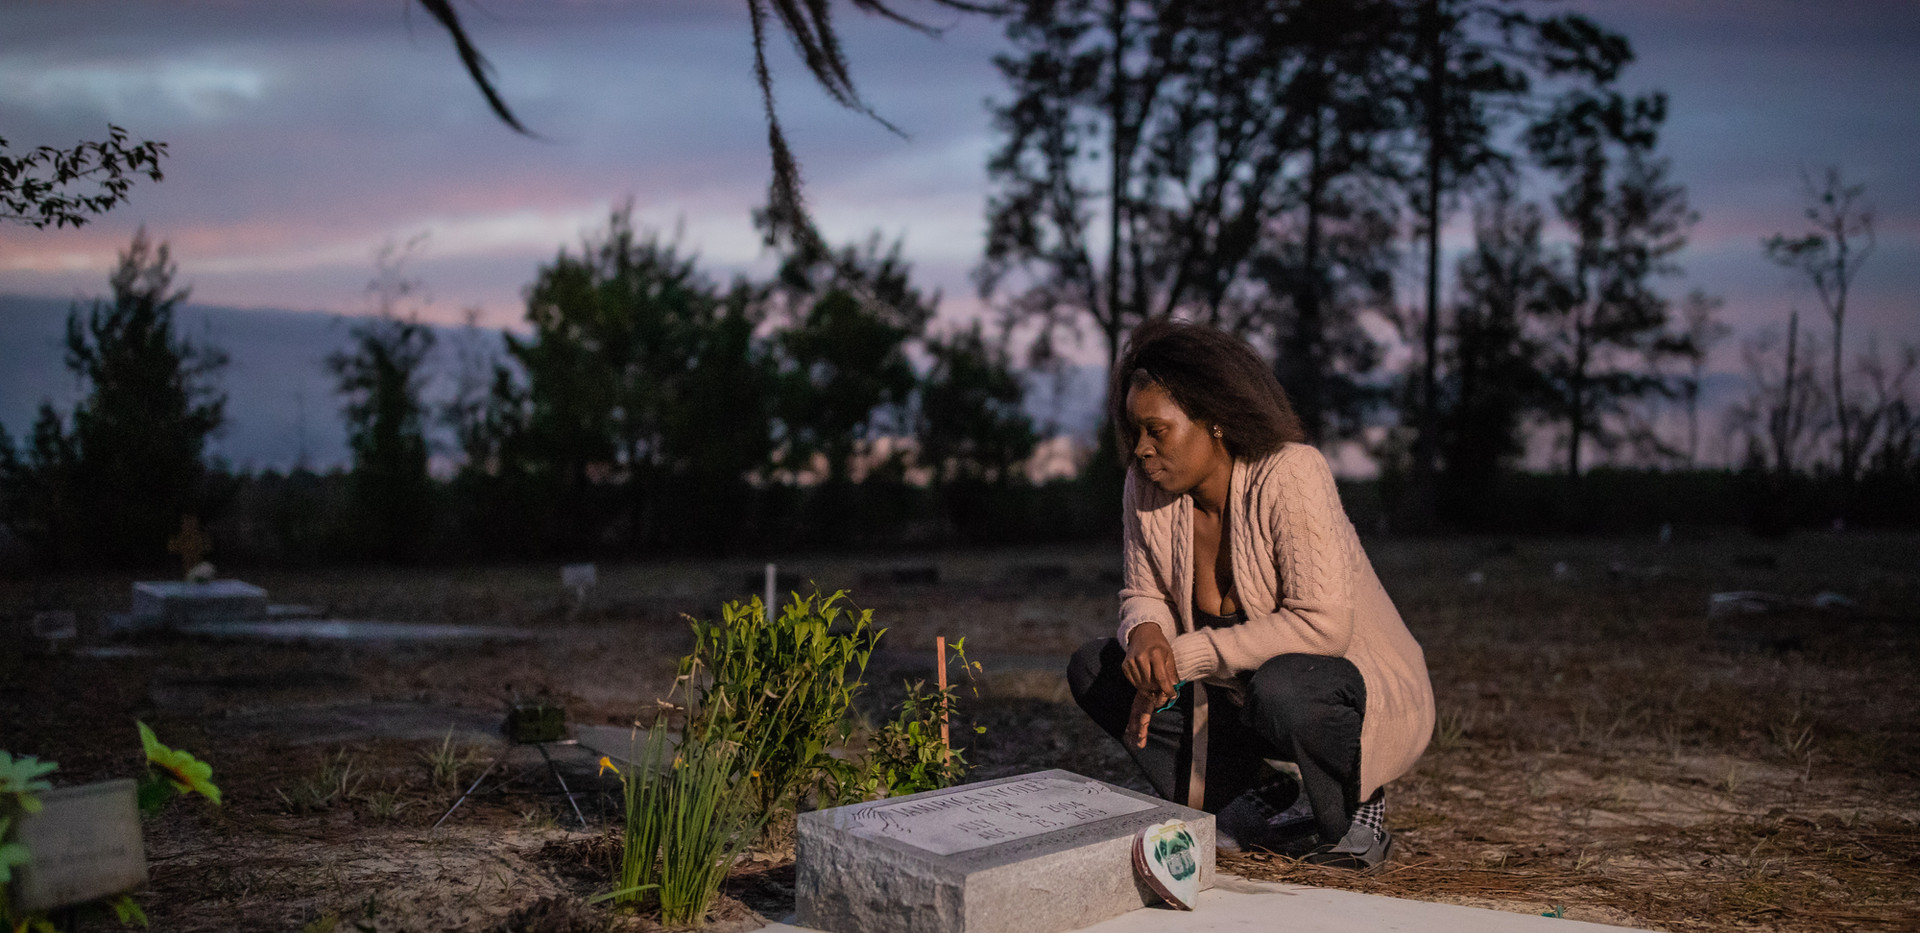 """Koquisha Cook, 36, spends time at her 15-years-old daughter's gravesite where she talks to her. Jamirica """"Noonie"""" Cook was shot and killed in their home in 2019."""